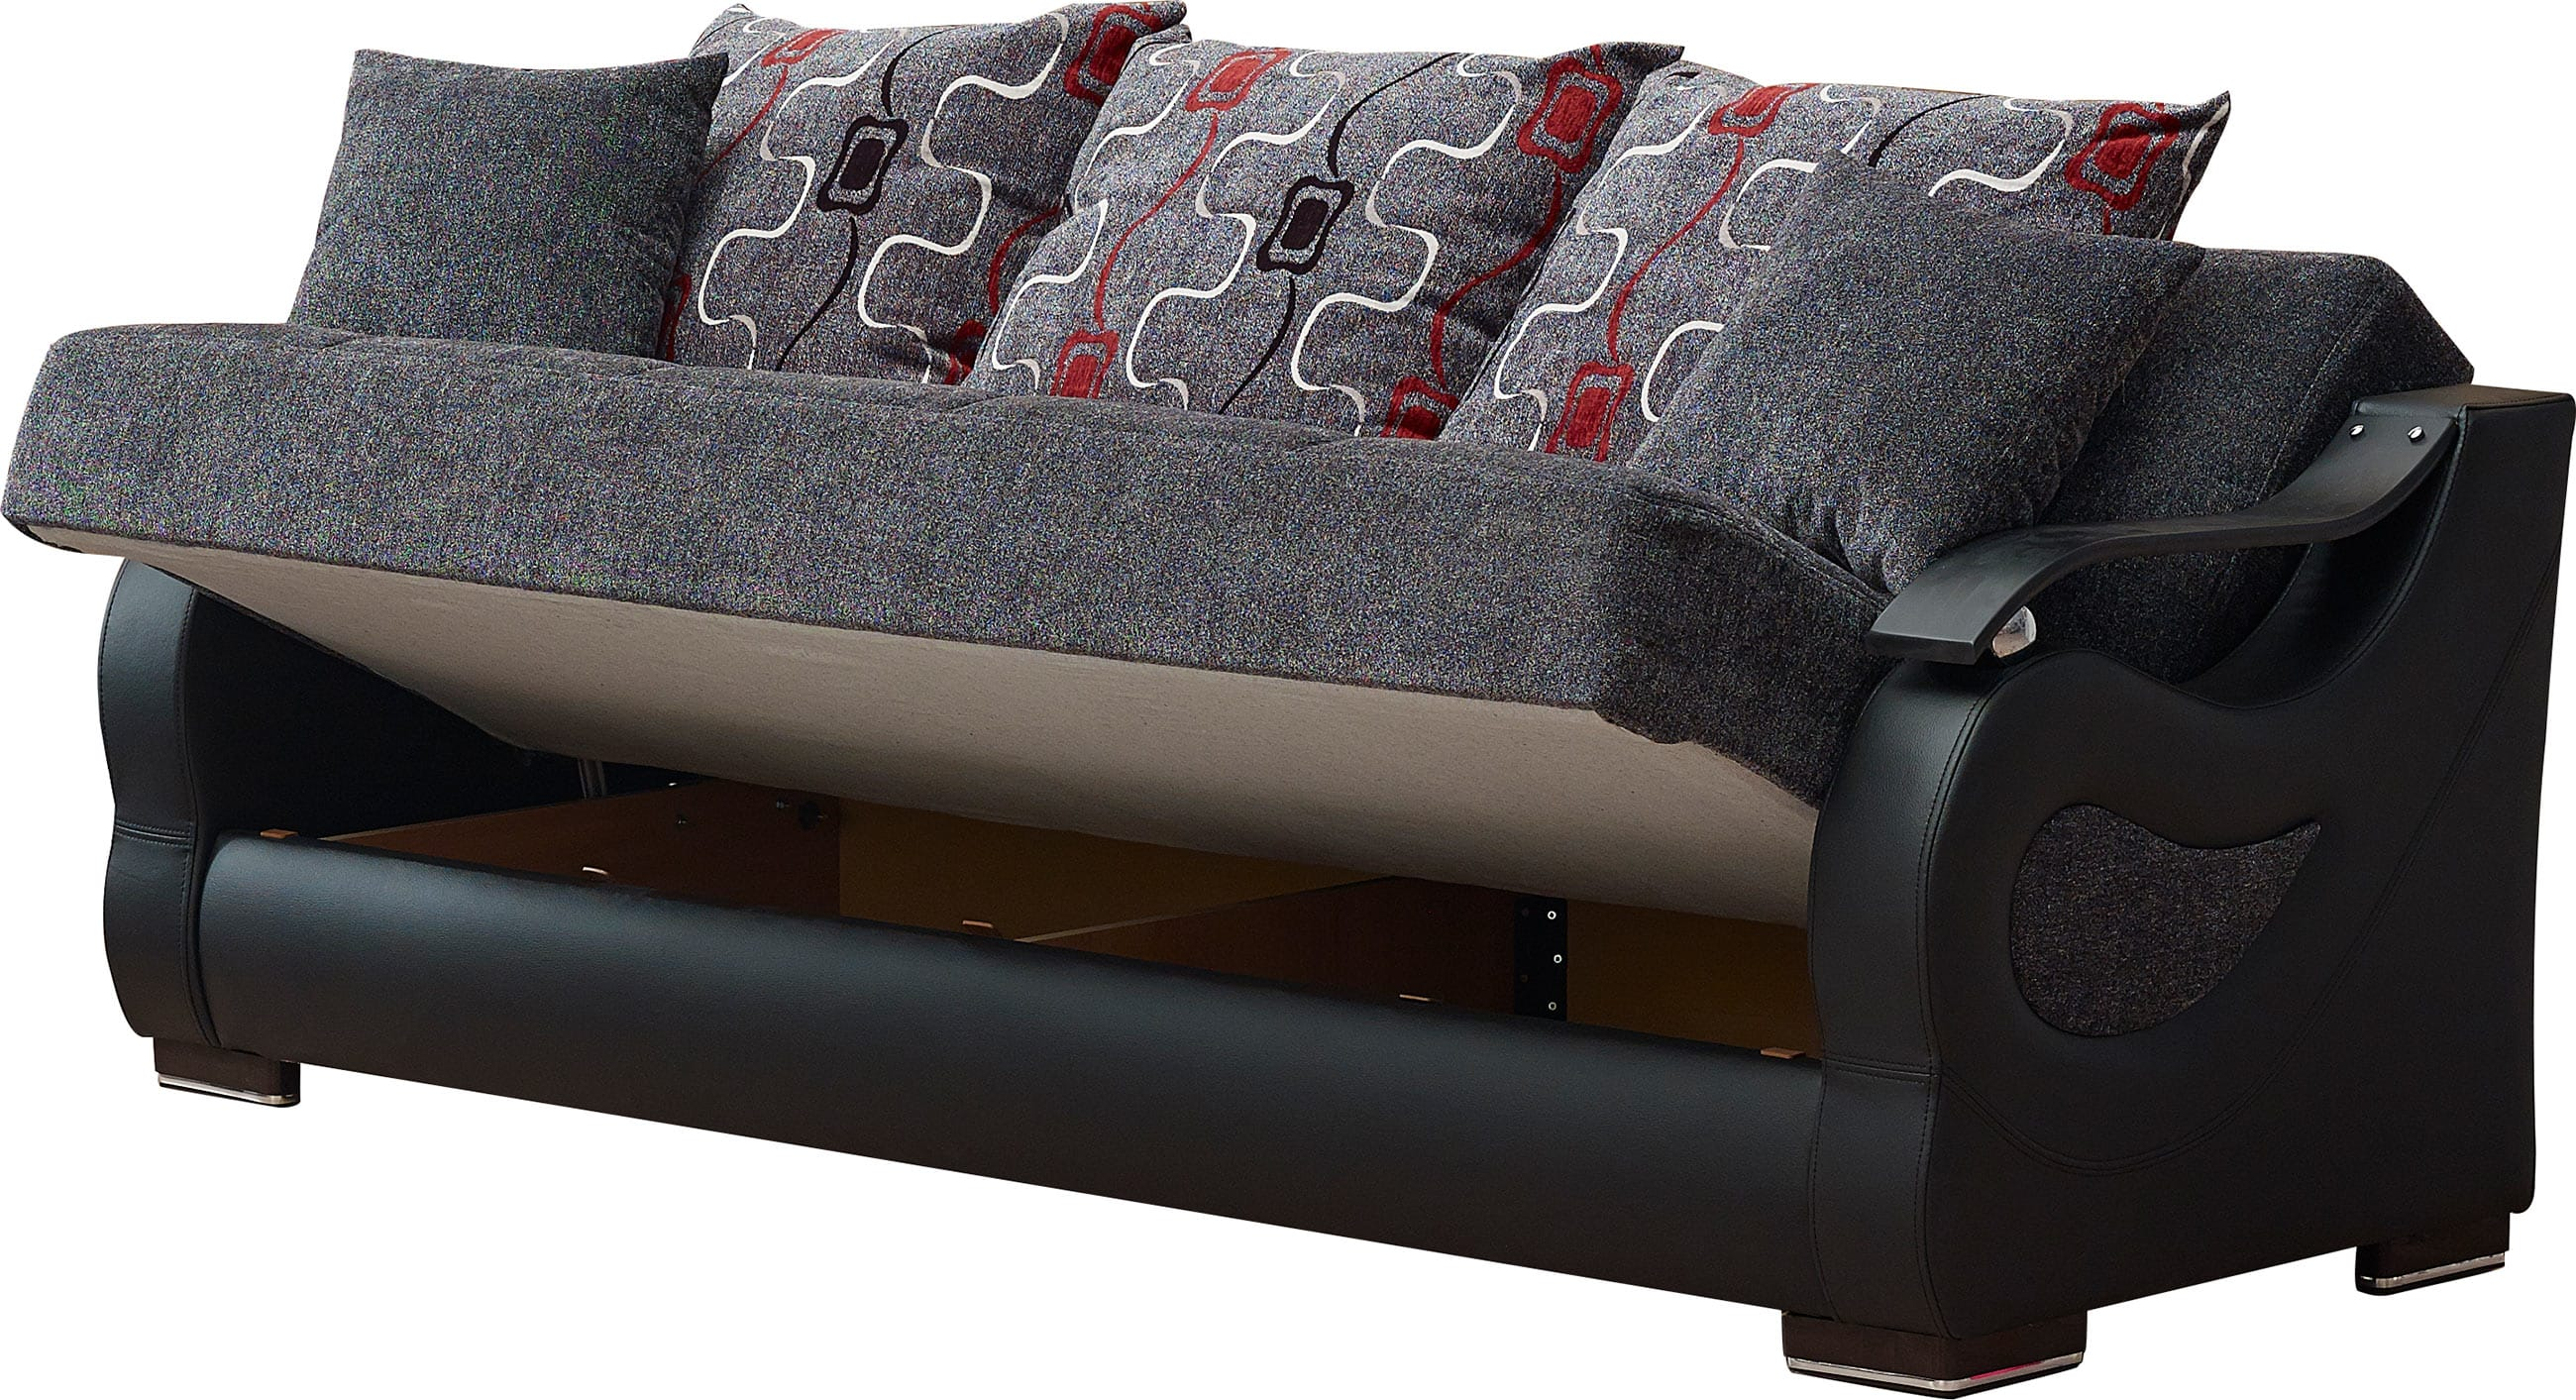 sofa beds phoenix arizona small sectional apartment therapy gray fabric bed by empire furniture usa